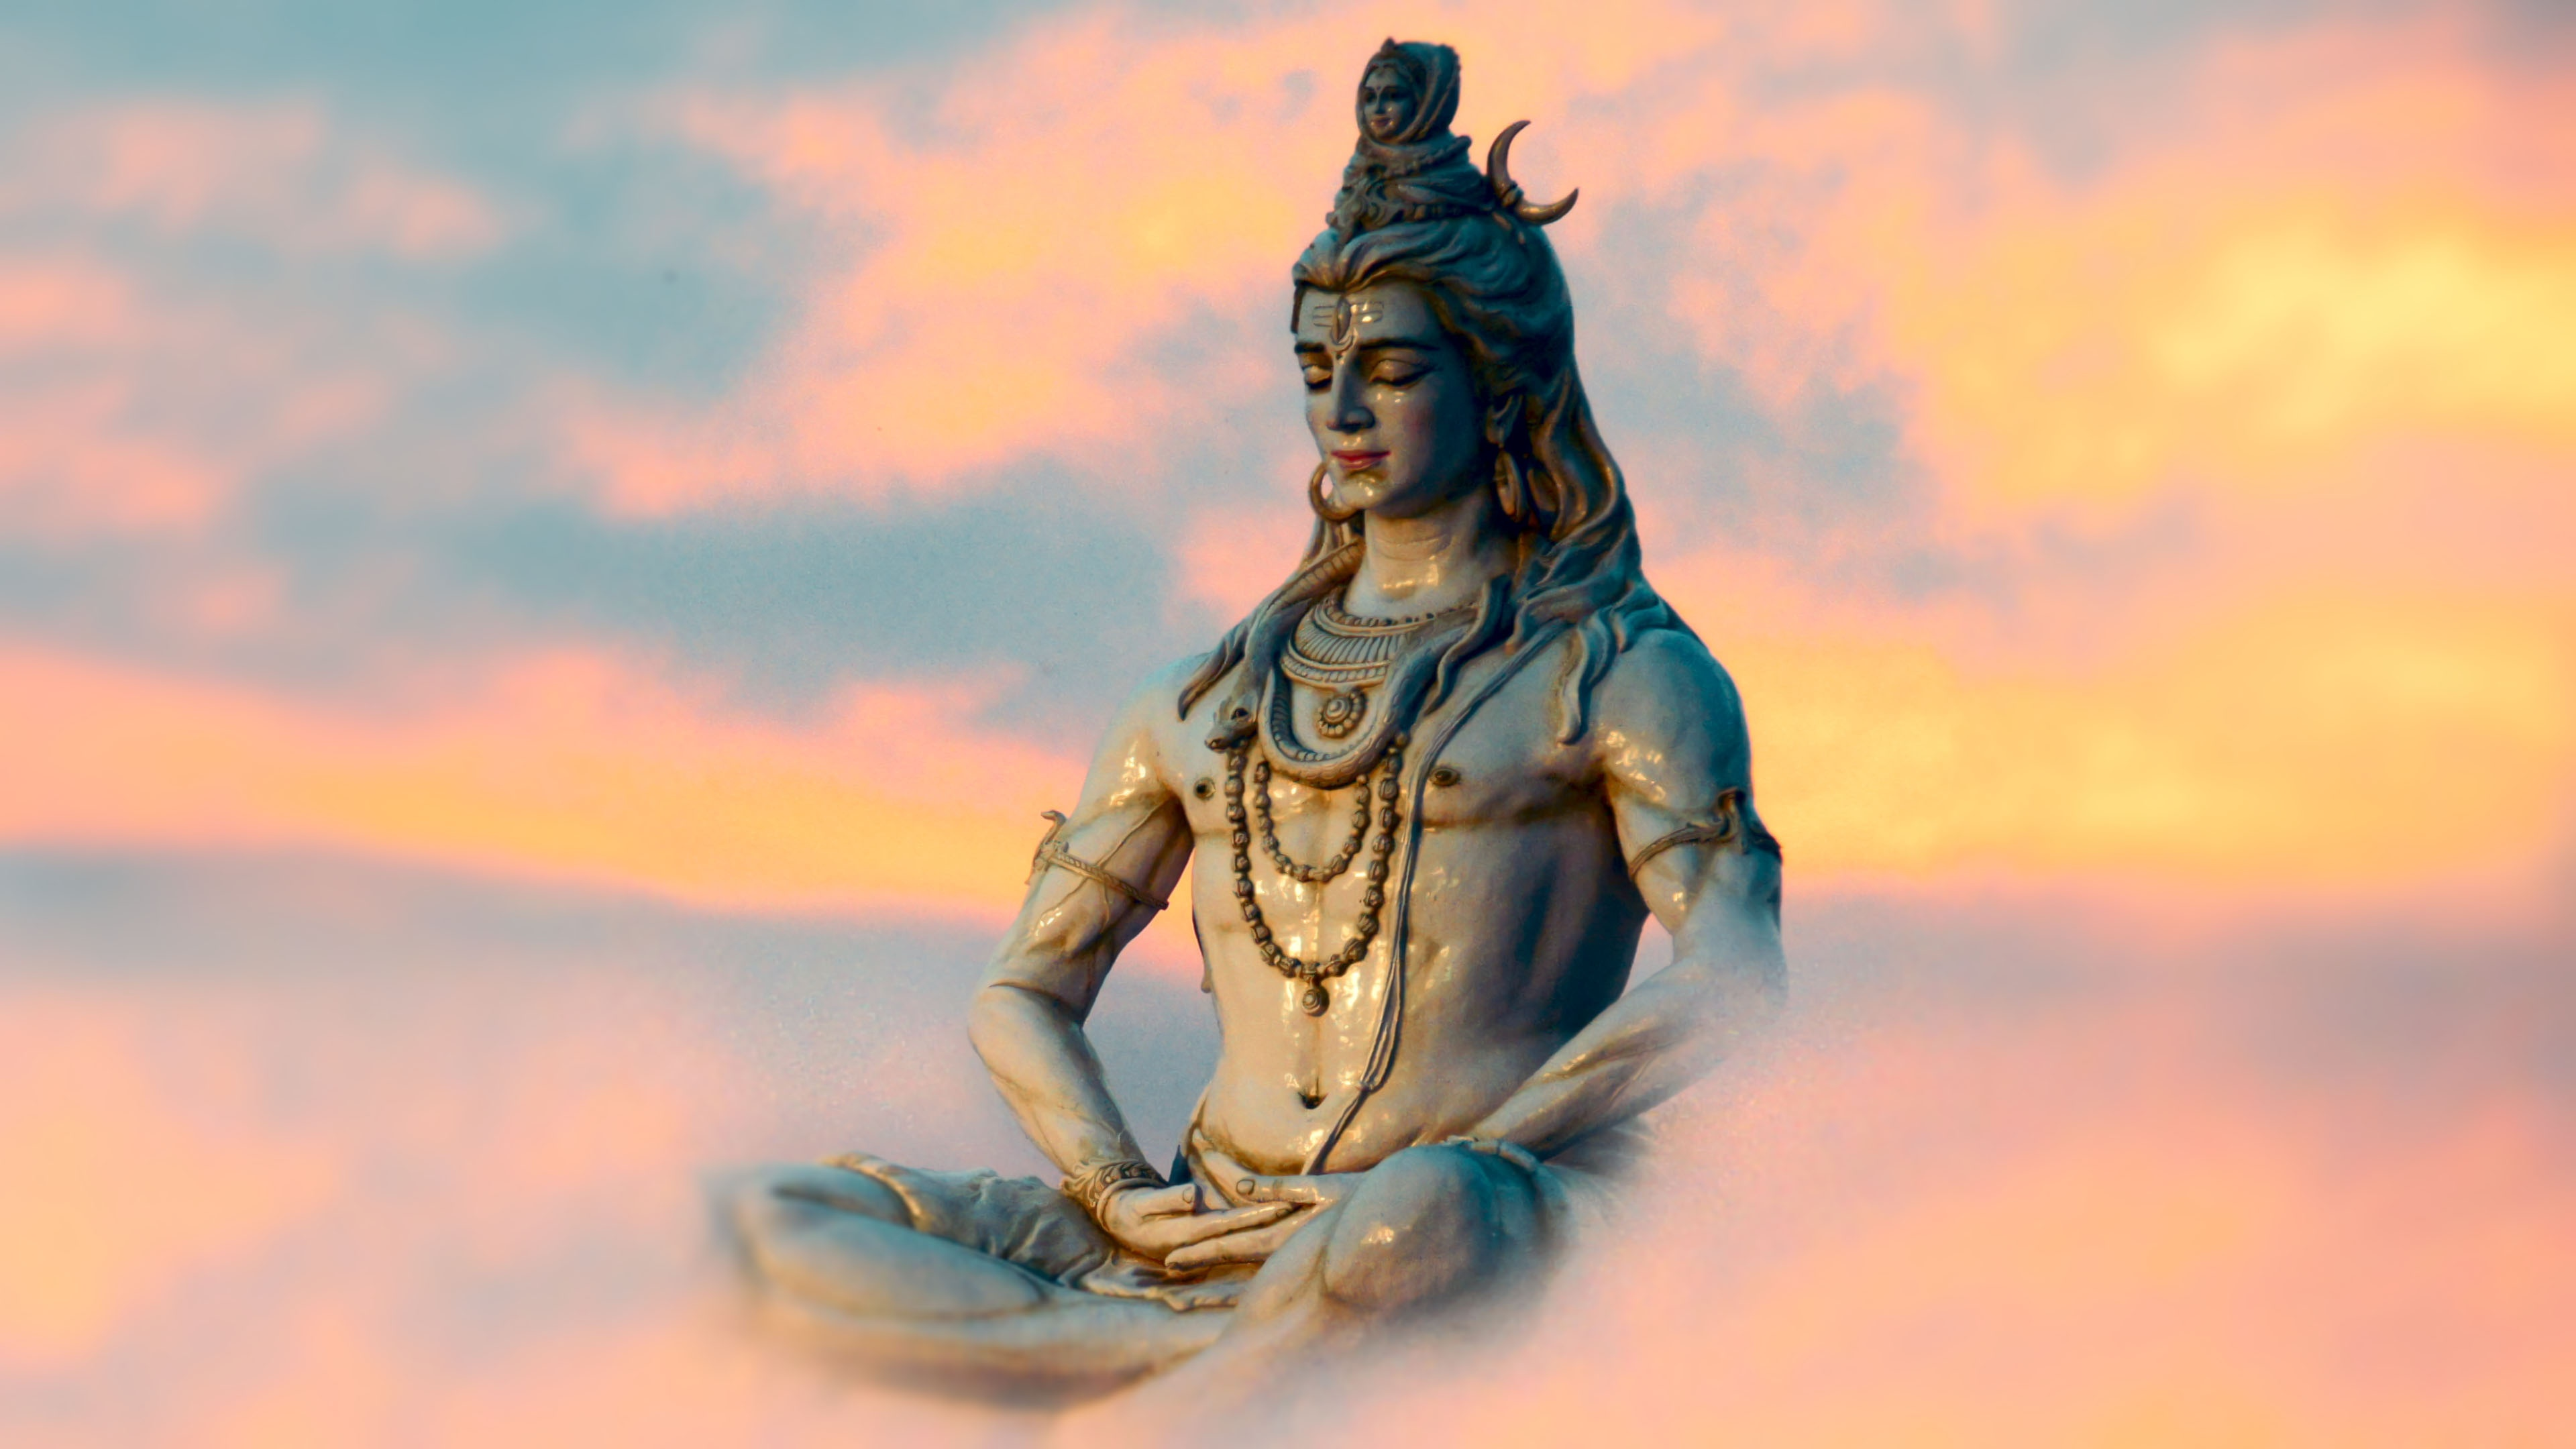 Lord Shiva HD Wallpapers   WordZz Lord Shiva Meditating 4K Wallpaper